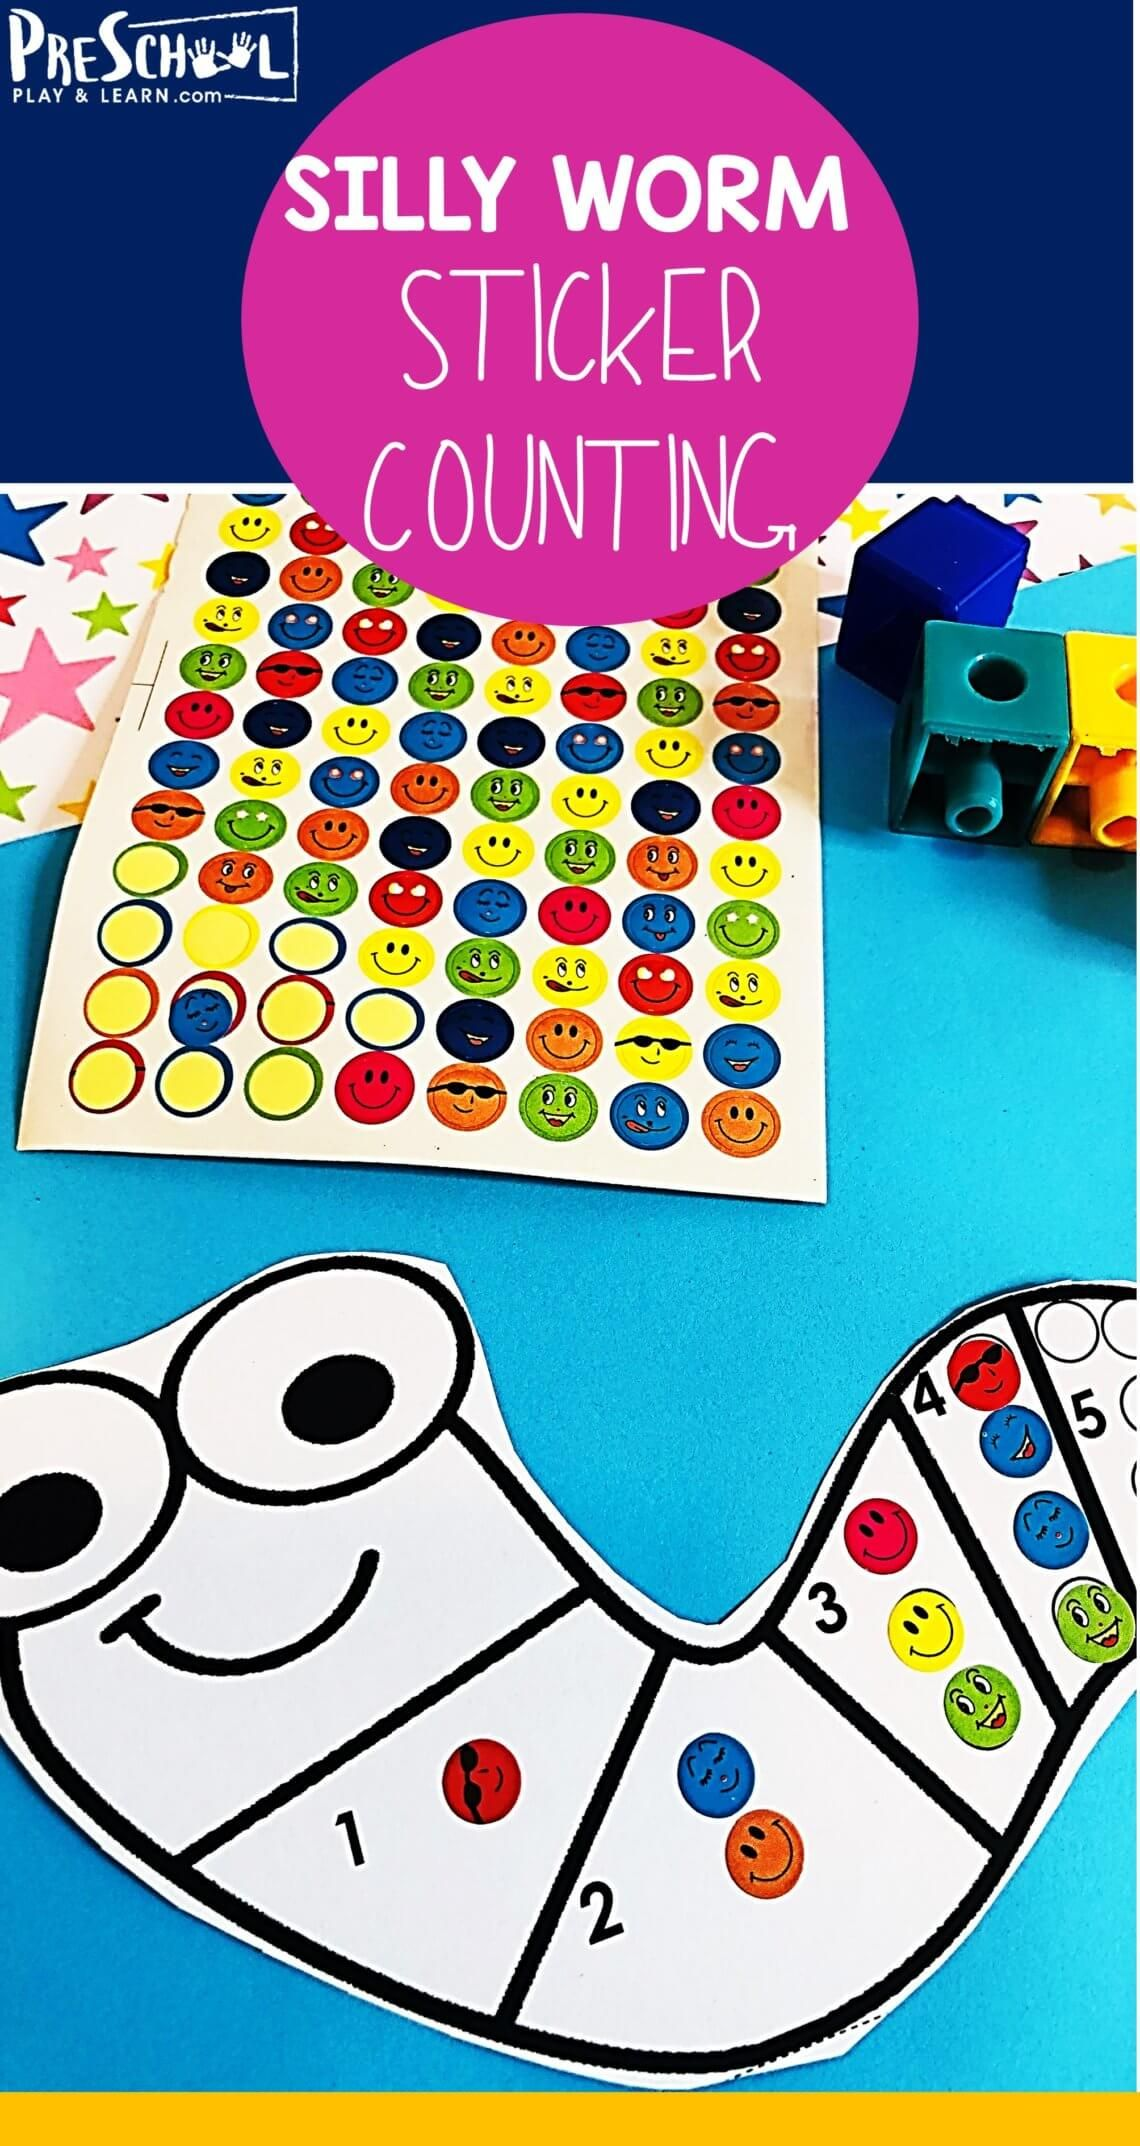 Free Silly Worm Count To 10 With Stickers